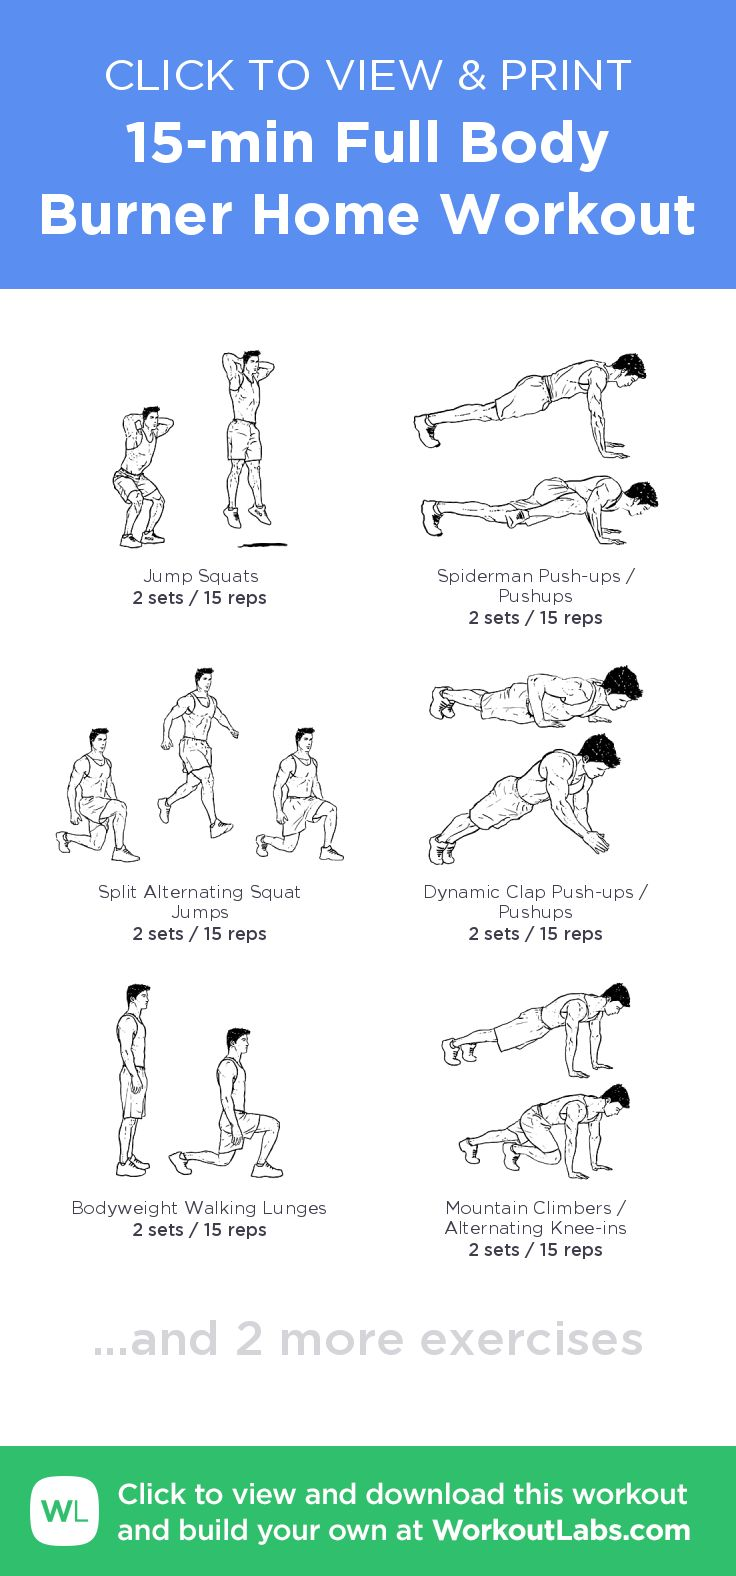 15-min Full Body Burner Home Workout –click to view and print this illustrated exercise plan created with #WorkoutLabsFit